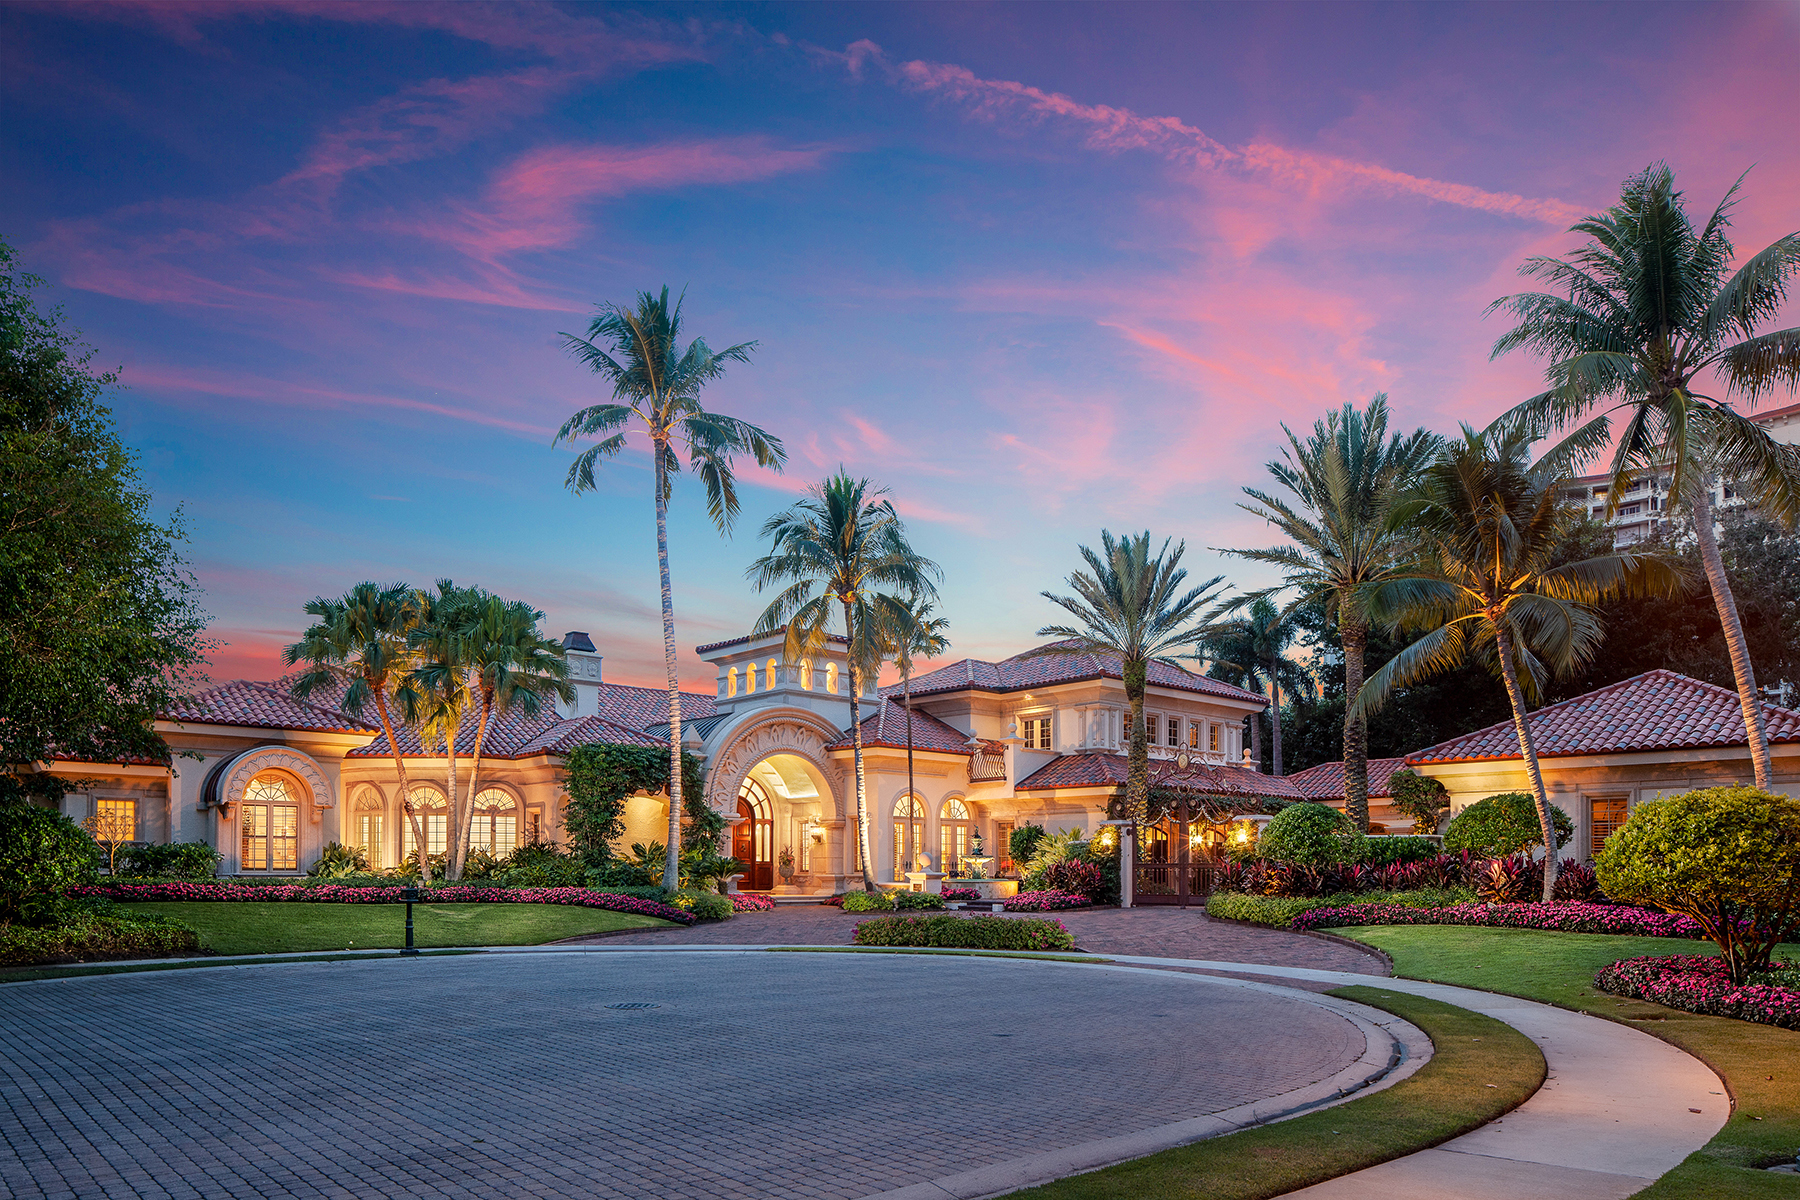 Single Family Homes for Sale at PELICAN BAY - BAY COLONY SHORES 7347 Tilden Lane Naples, Florida 34108 United States